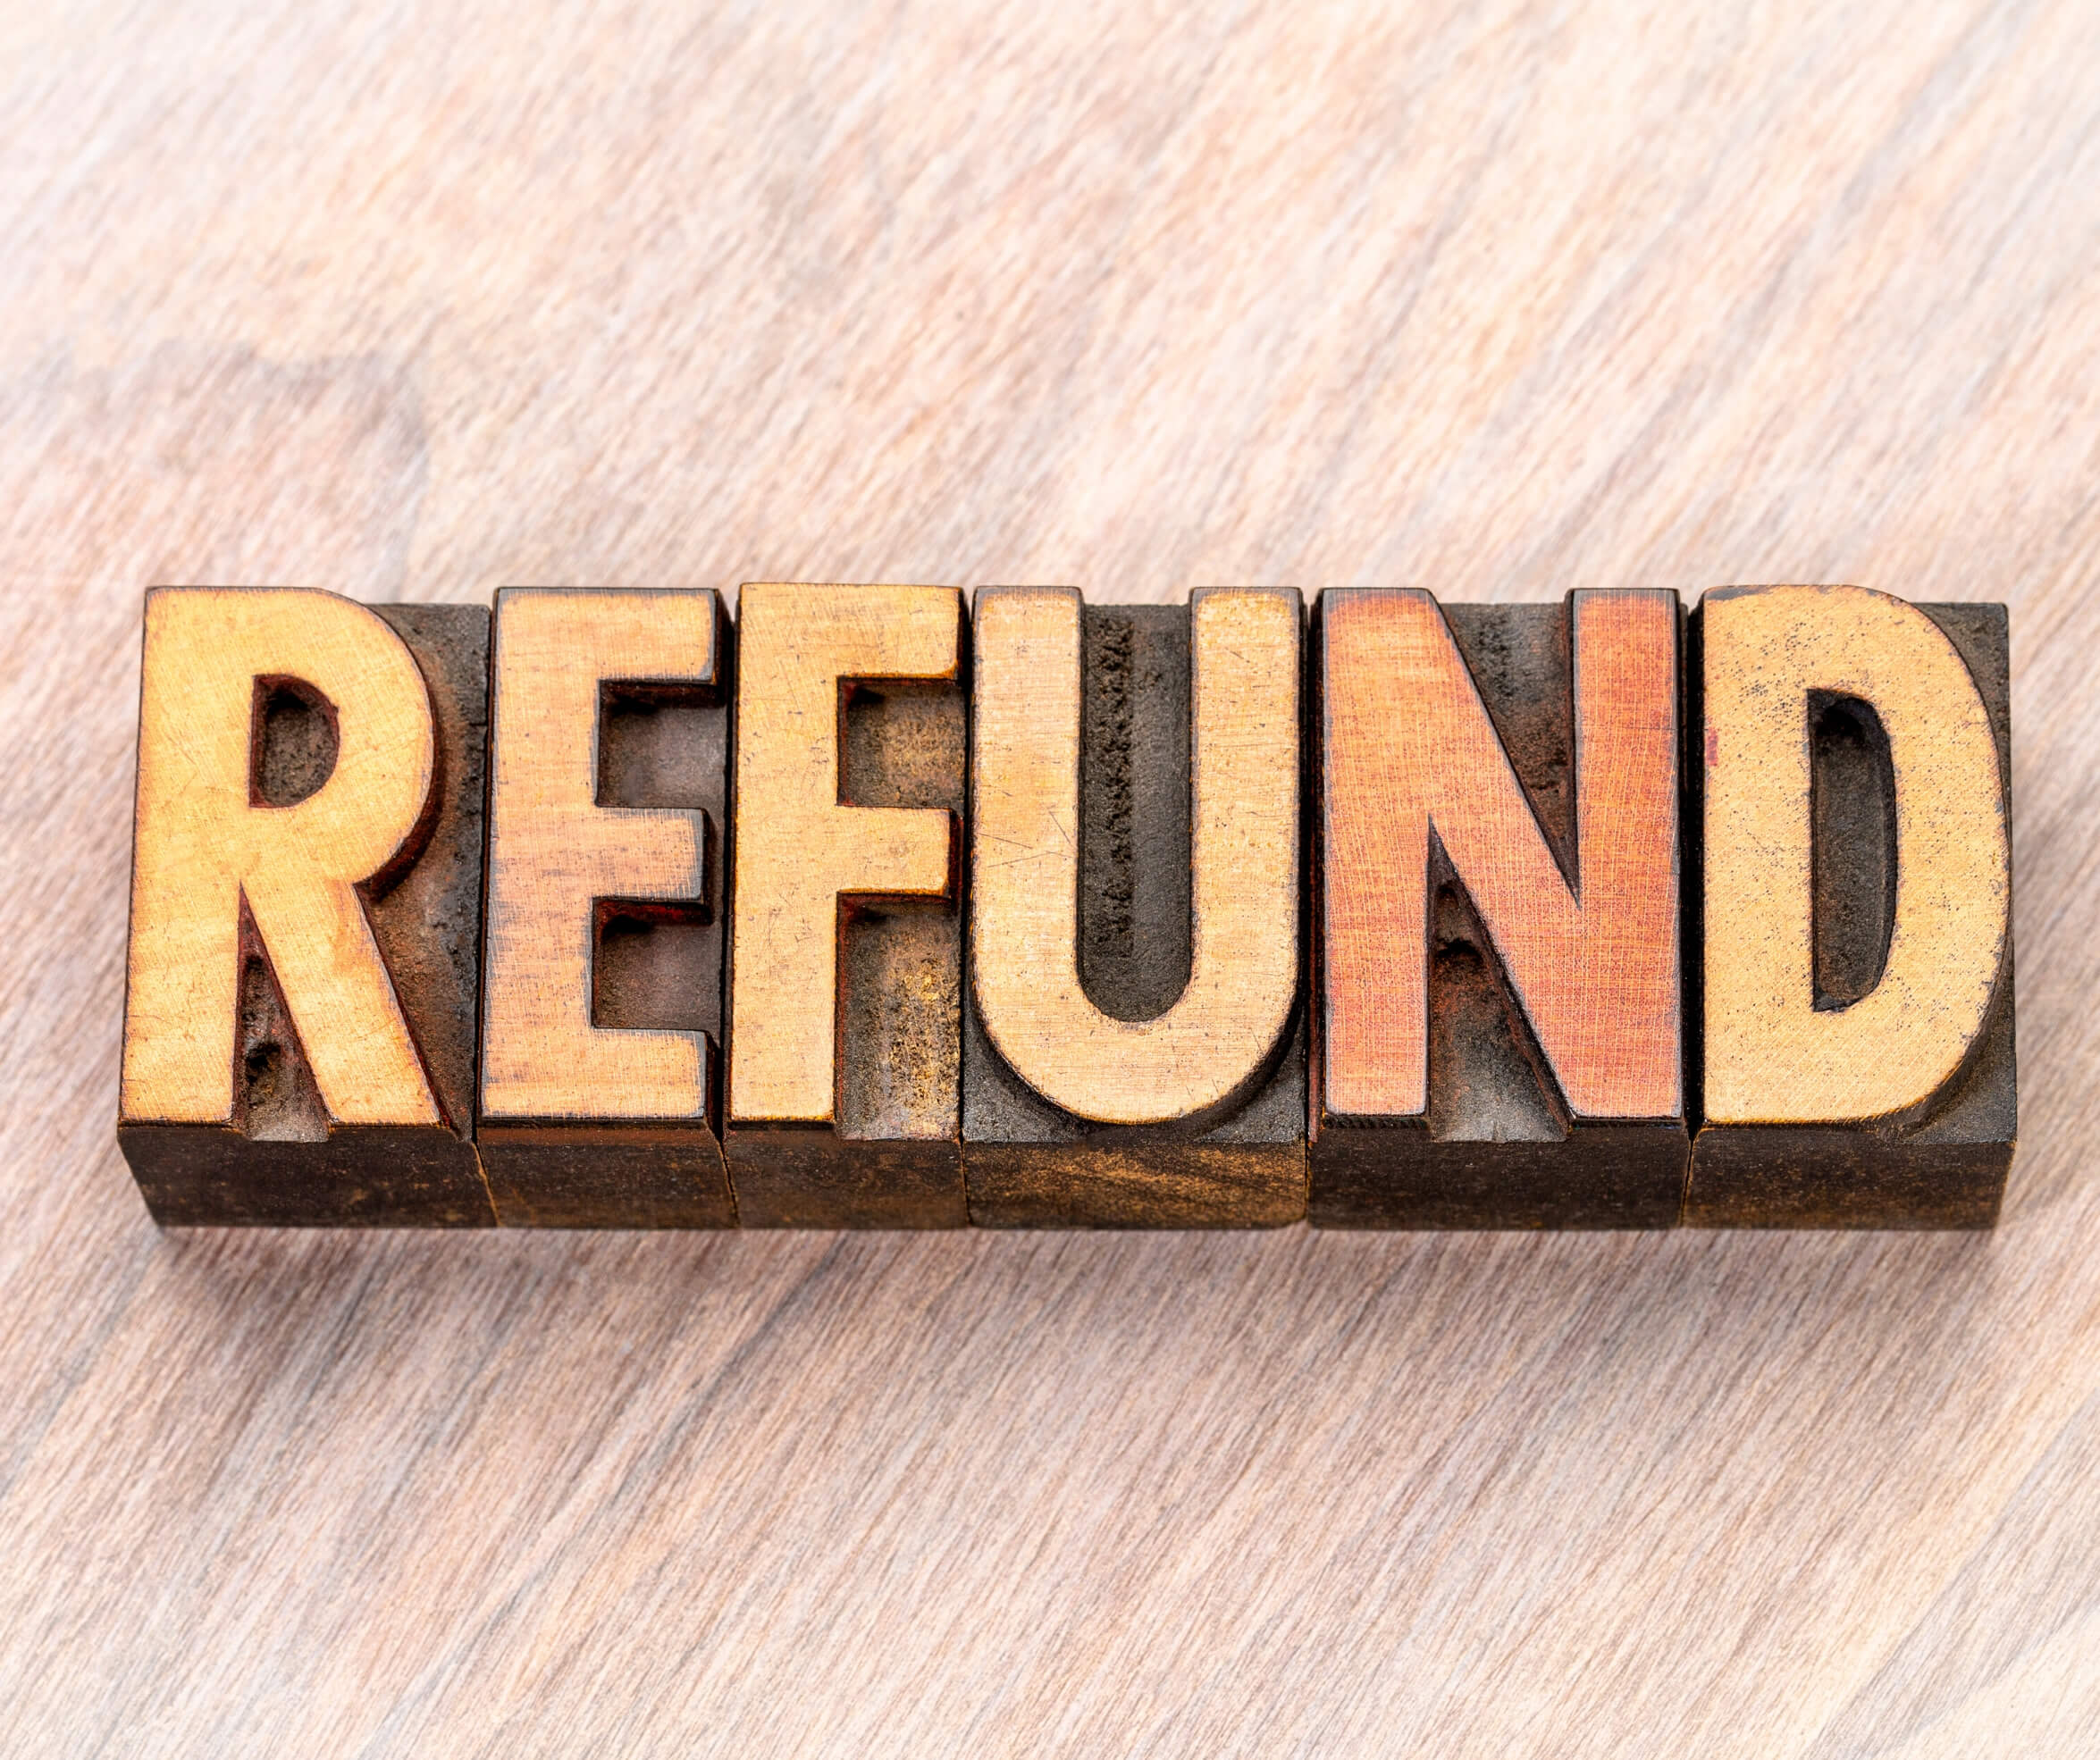 While Receiving a Refund